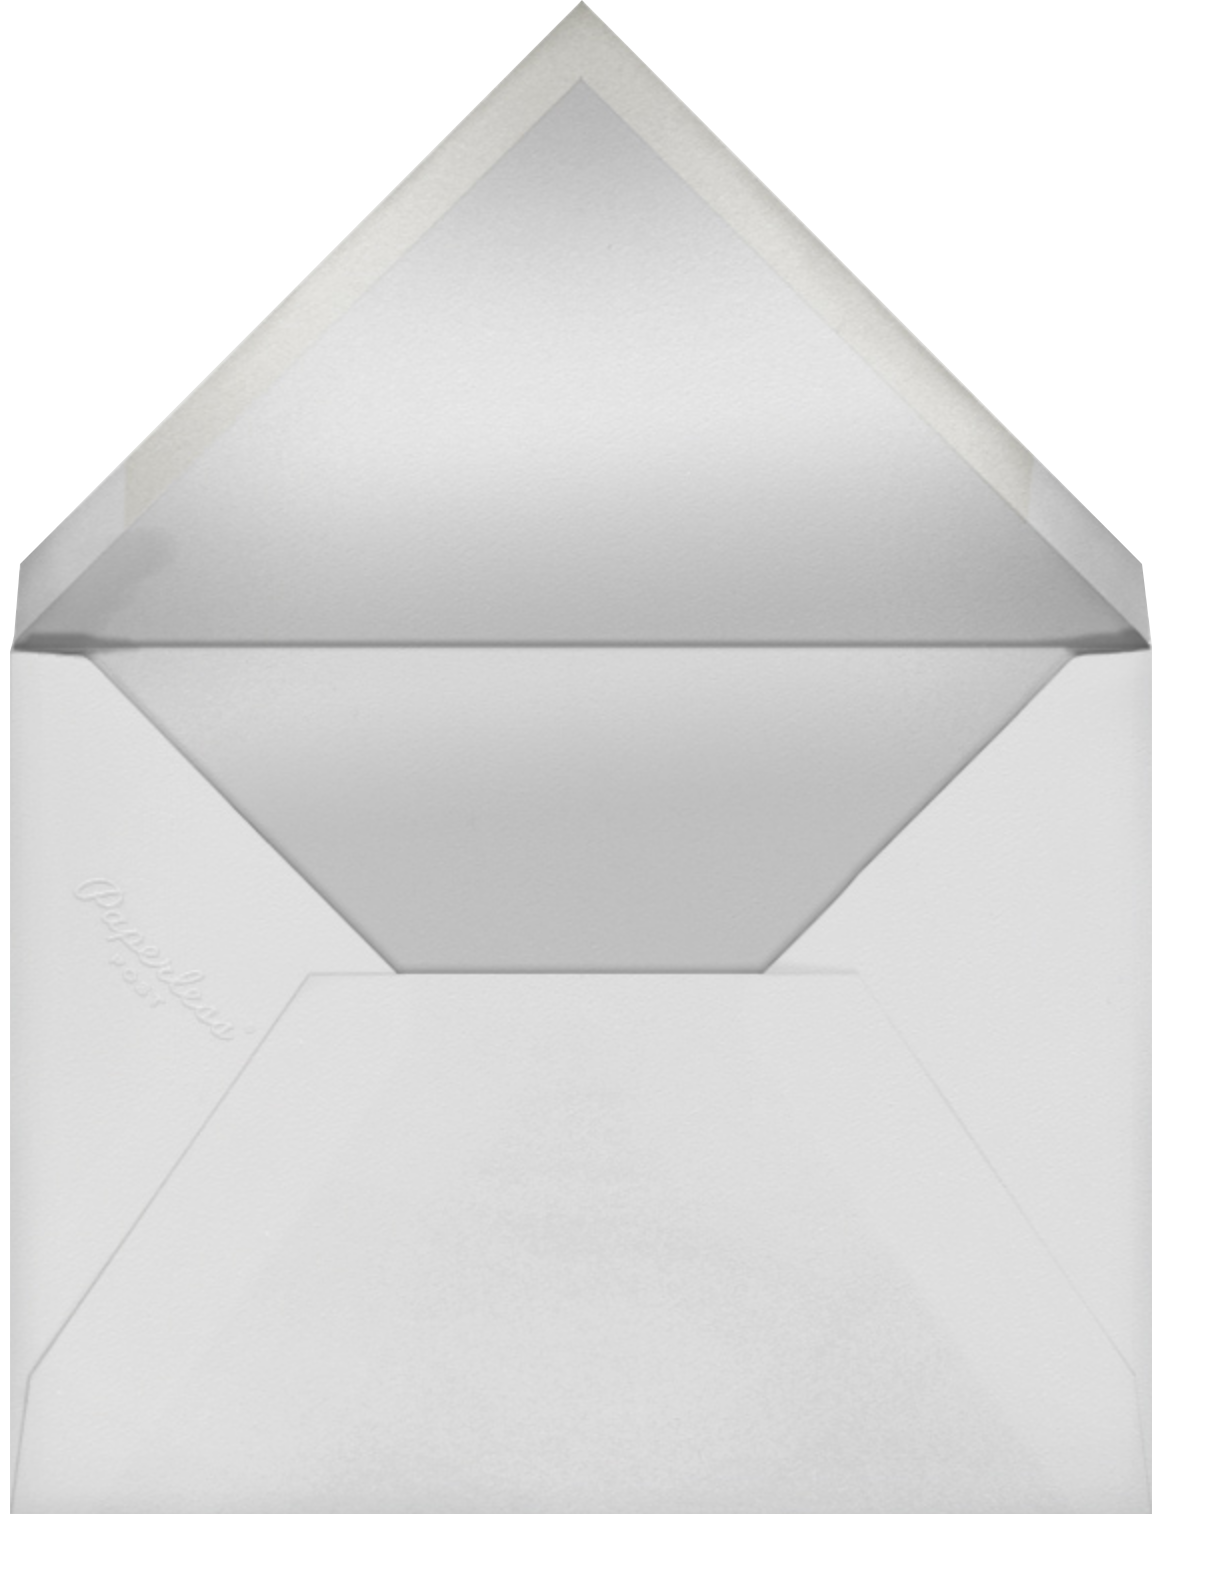 Cold Boys - Paperless Post - Father's Day - envelope back